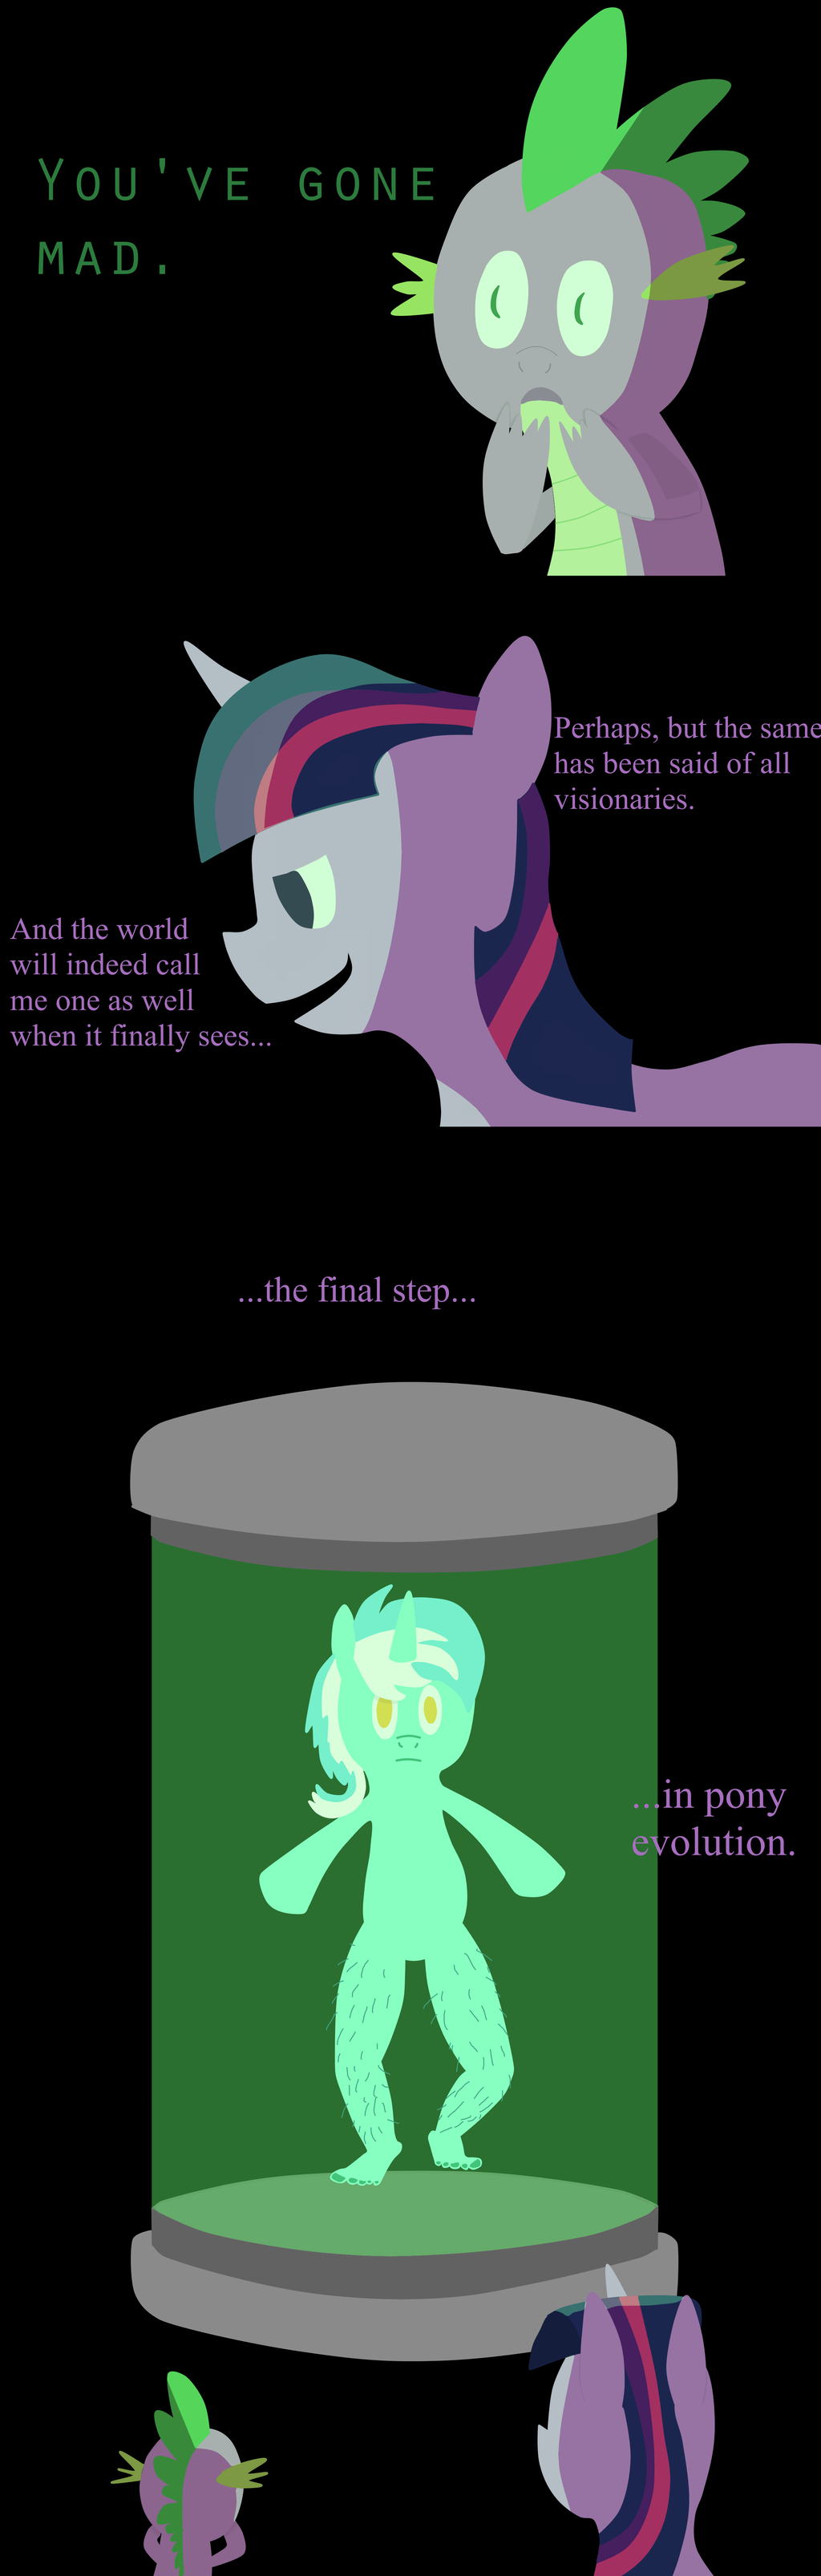 Progress Marches On by unassuminguser